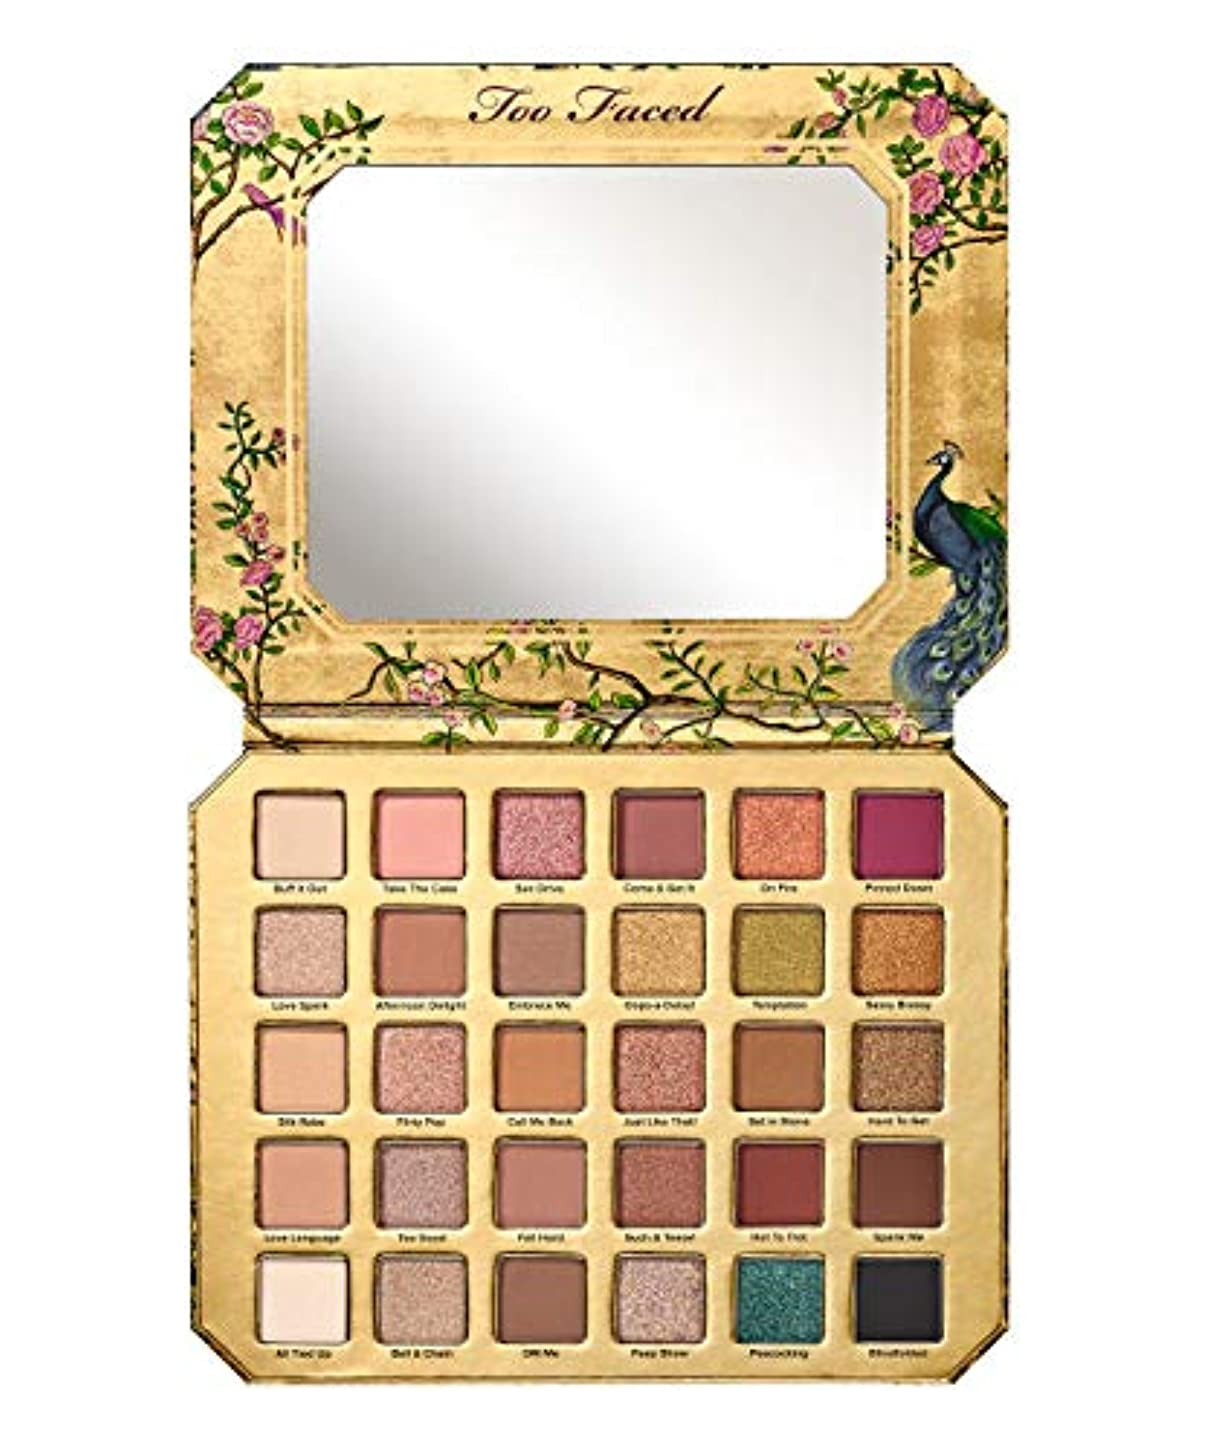 プロット酸化物遡るToo Faced Natural Lust Eye Shadow Palette+ FREE Sample